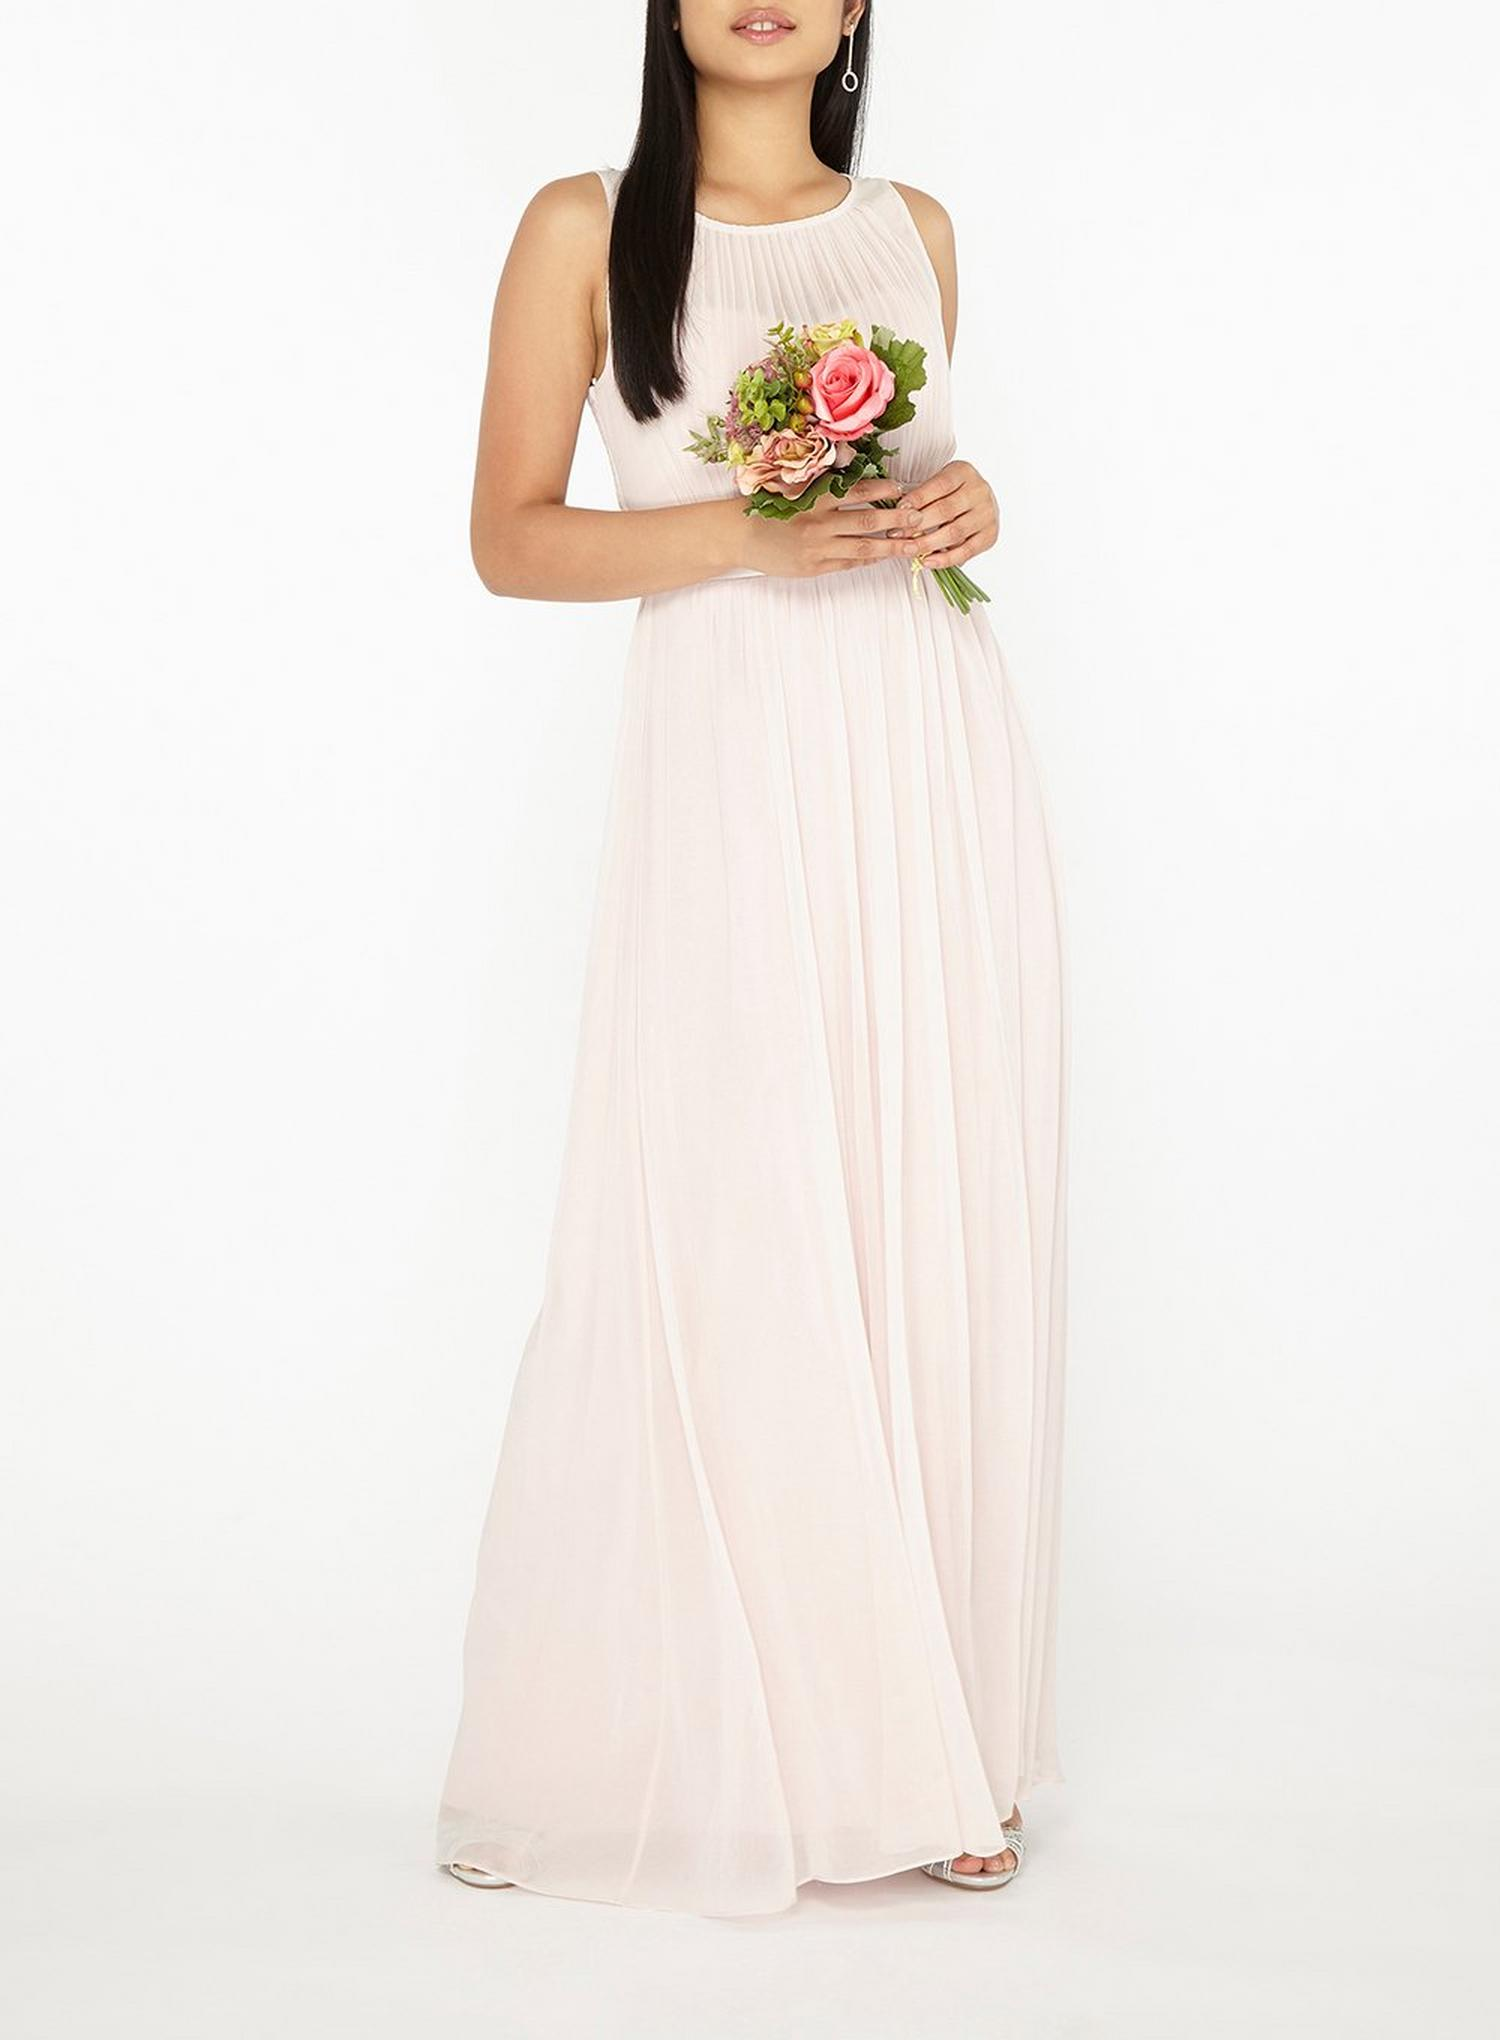 153 Petite Natalie Blush Maxi Dress image number 1